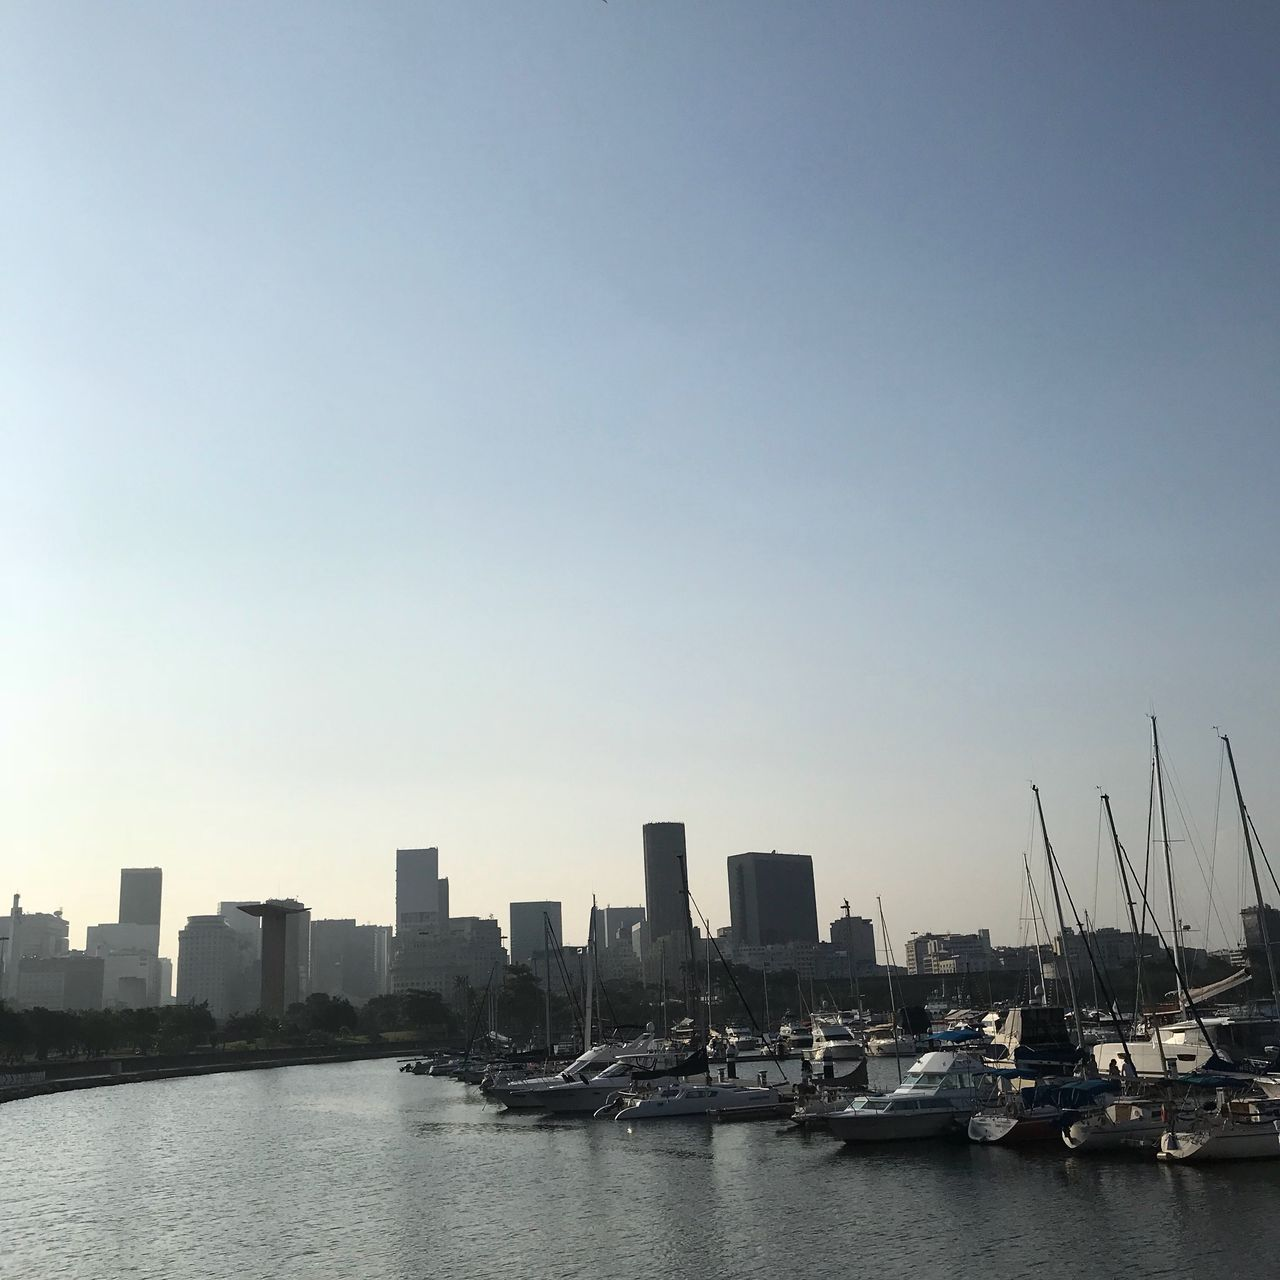 water, sky, architecture, building exterior, city, built structure, building, transportation, no people, clear sky, waterfront, copy space, nature, sea, nautical vessel, landscape, mode of transportation, urban skyline, outdoors, cityscape, office building exterior, skyscraper, sailboat, marina